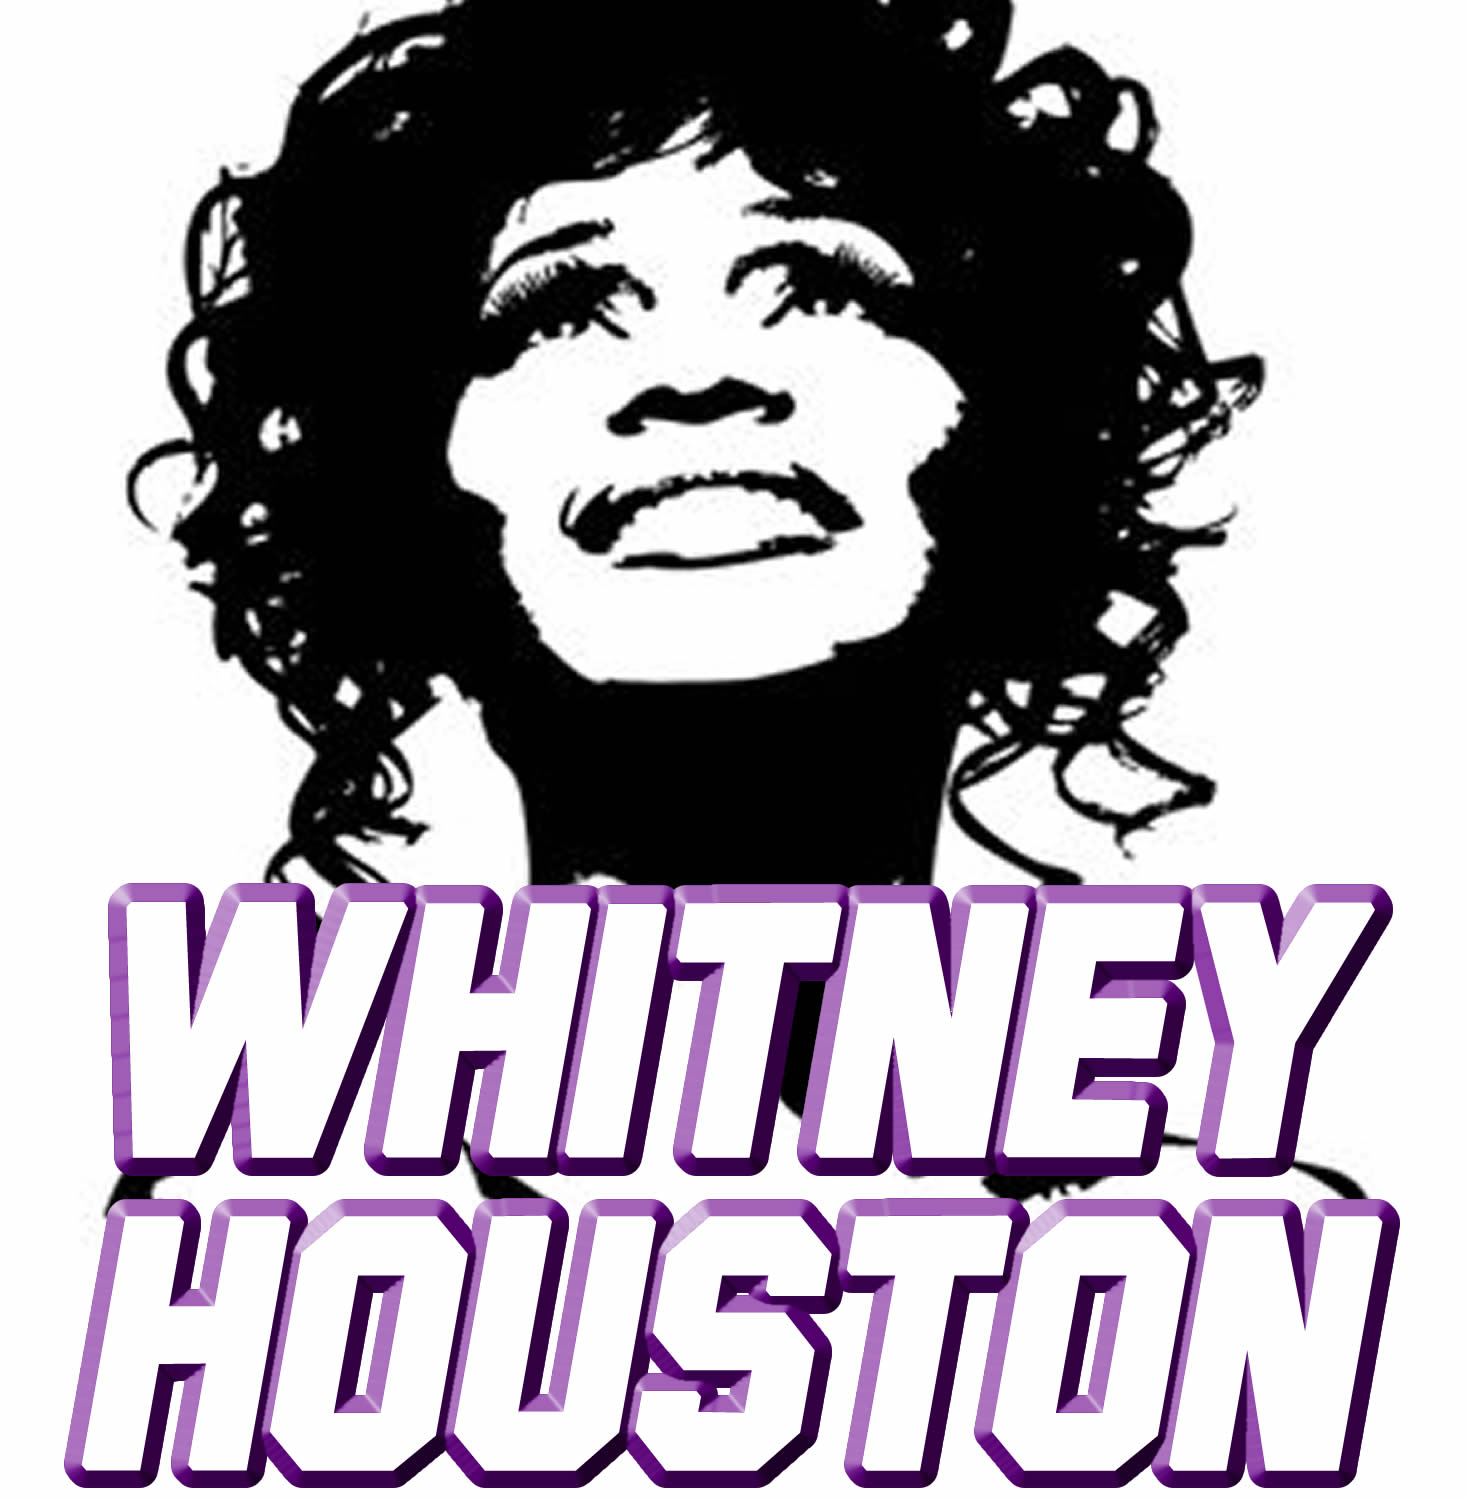 Vocal-Star Whitney Houston Hits